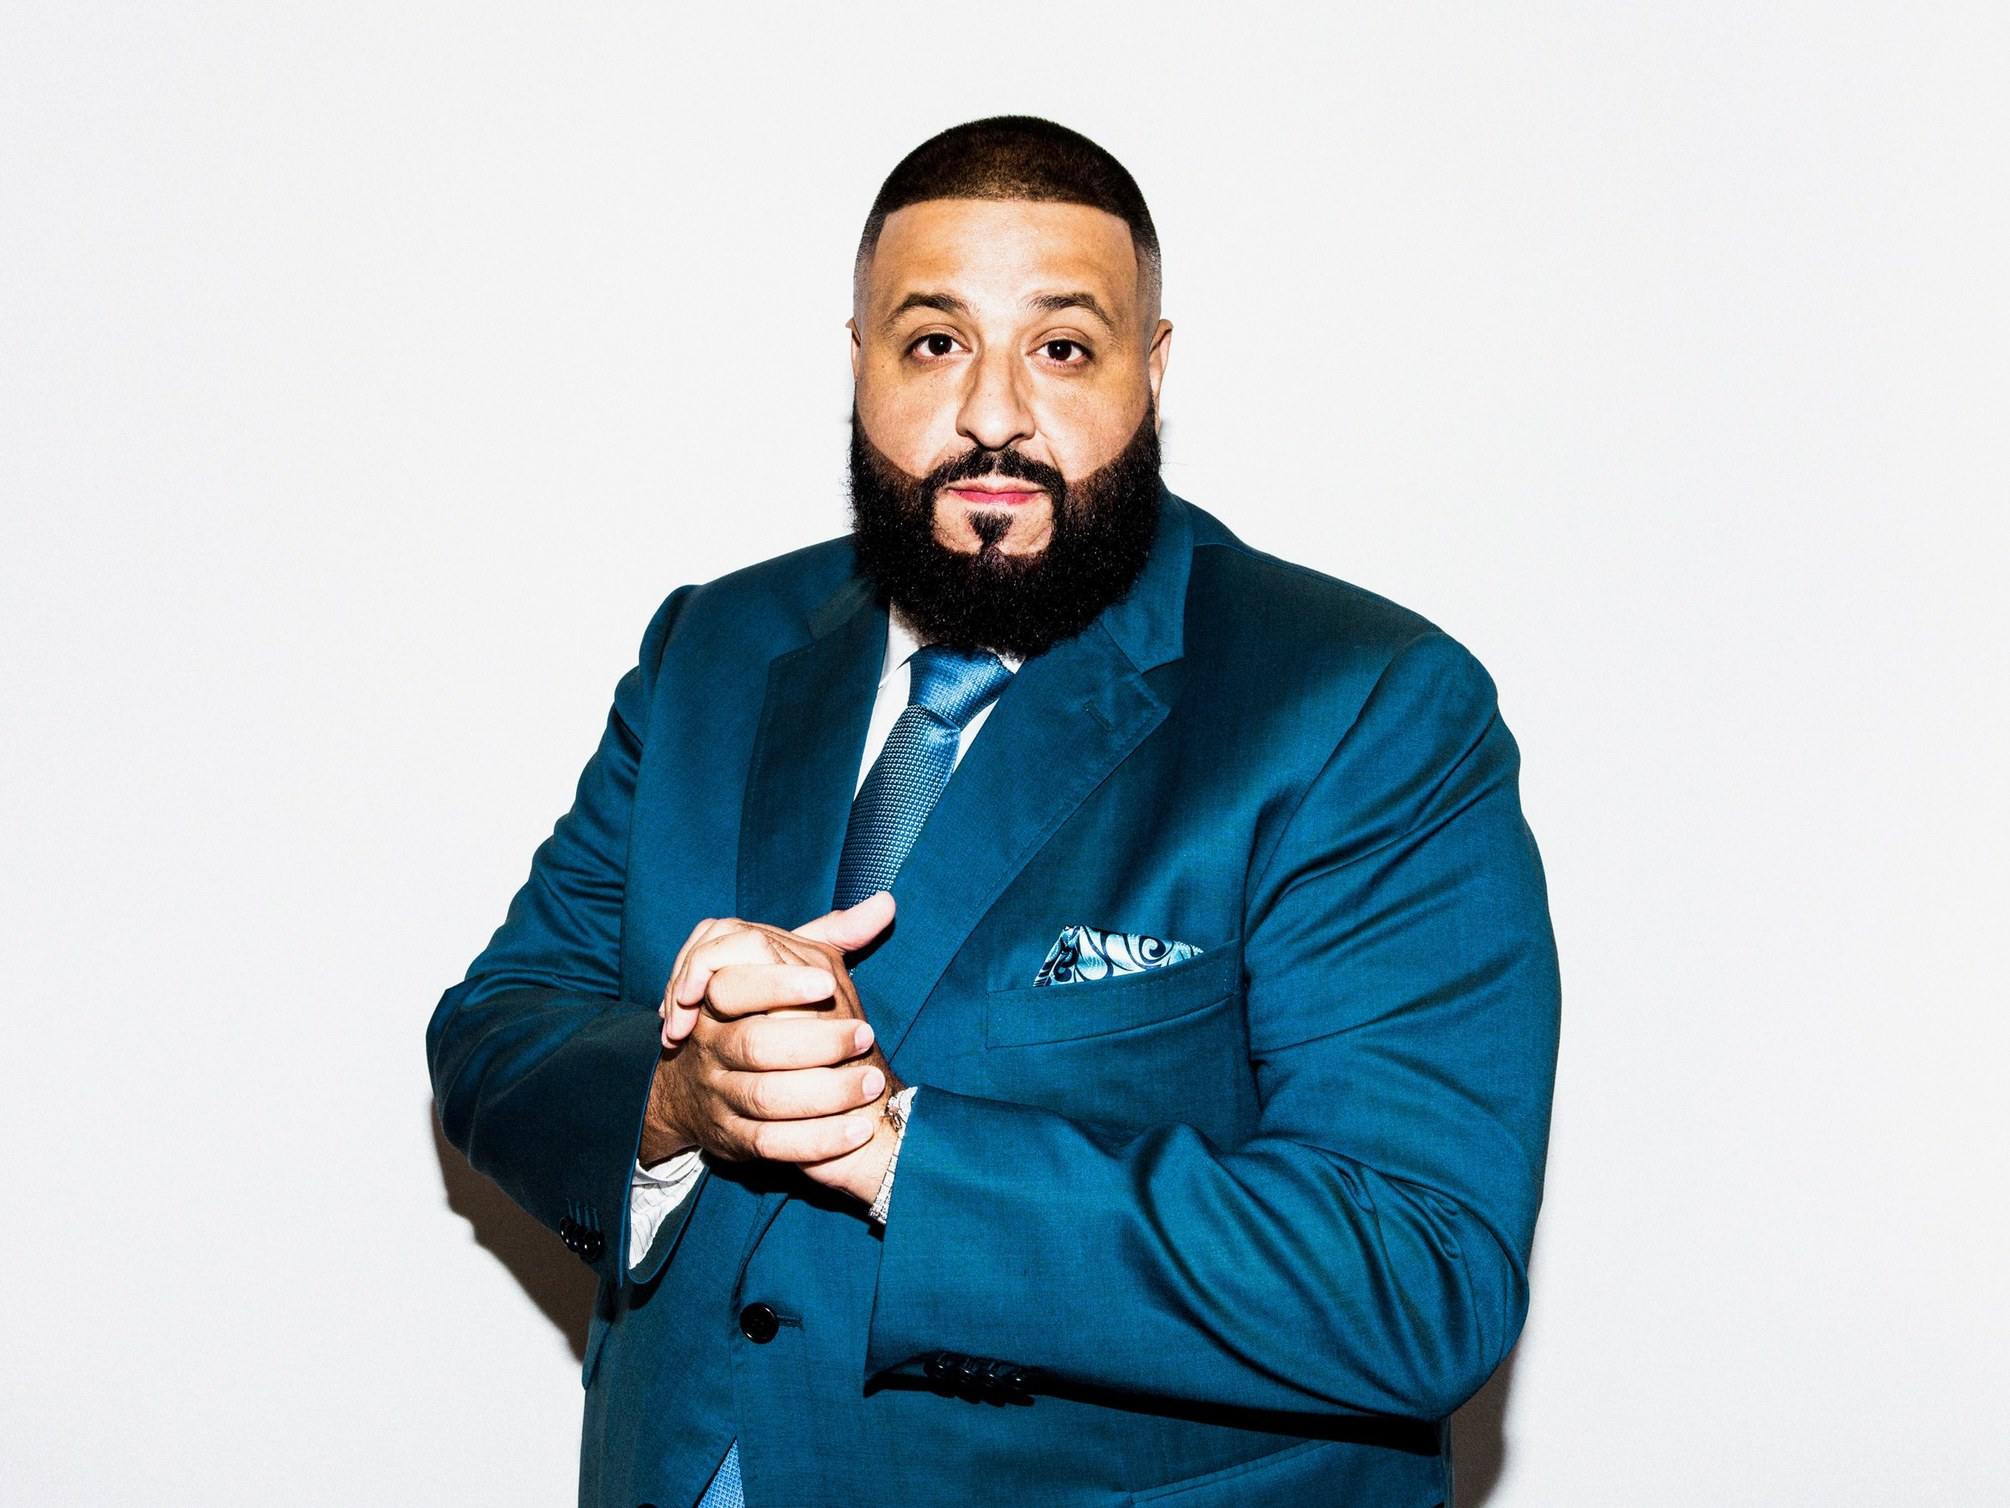 DJ Khaled wearing a blue suit